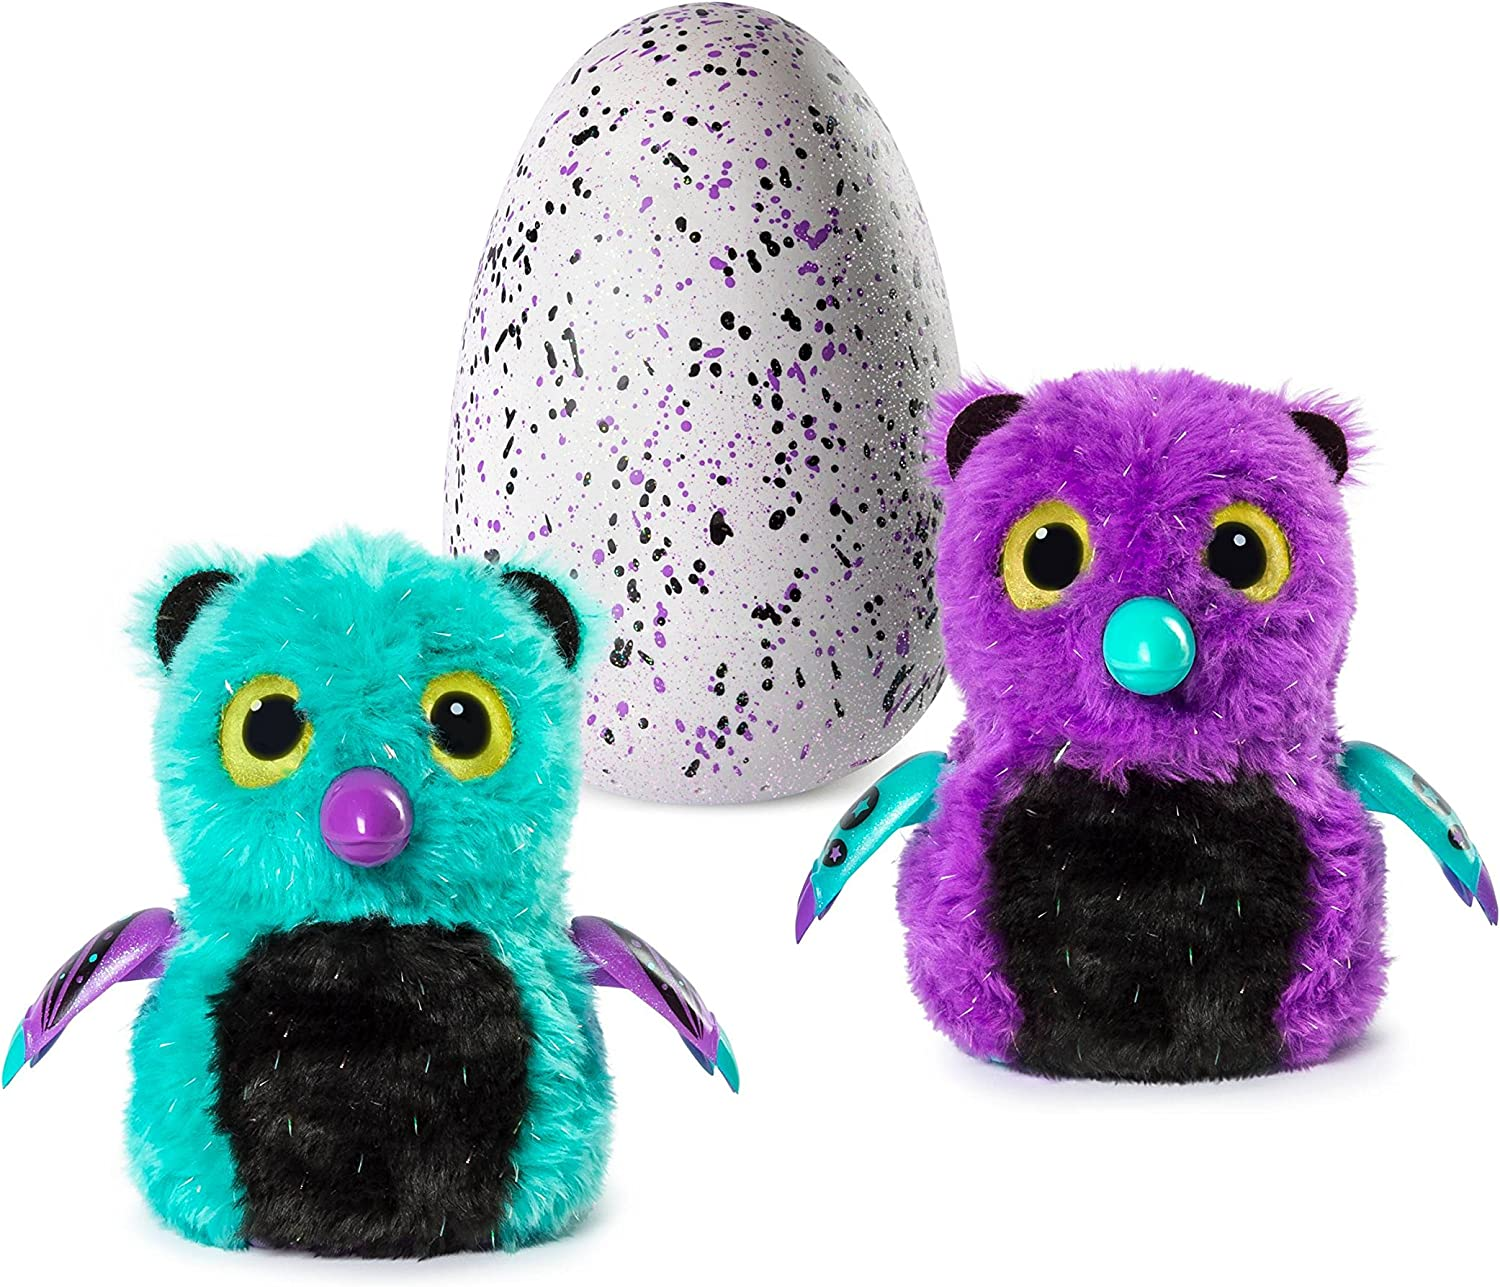 Hatchimals Glittering Garden Hatching Egg, Glitzy Bearakeet Exclusive Interactive Creature by Spin Master